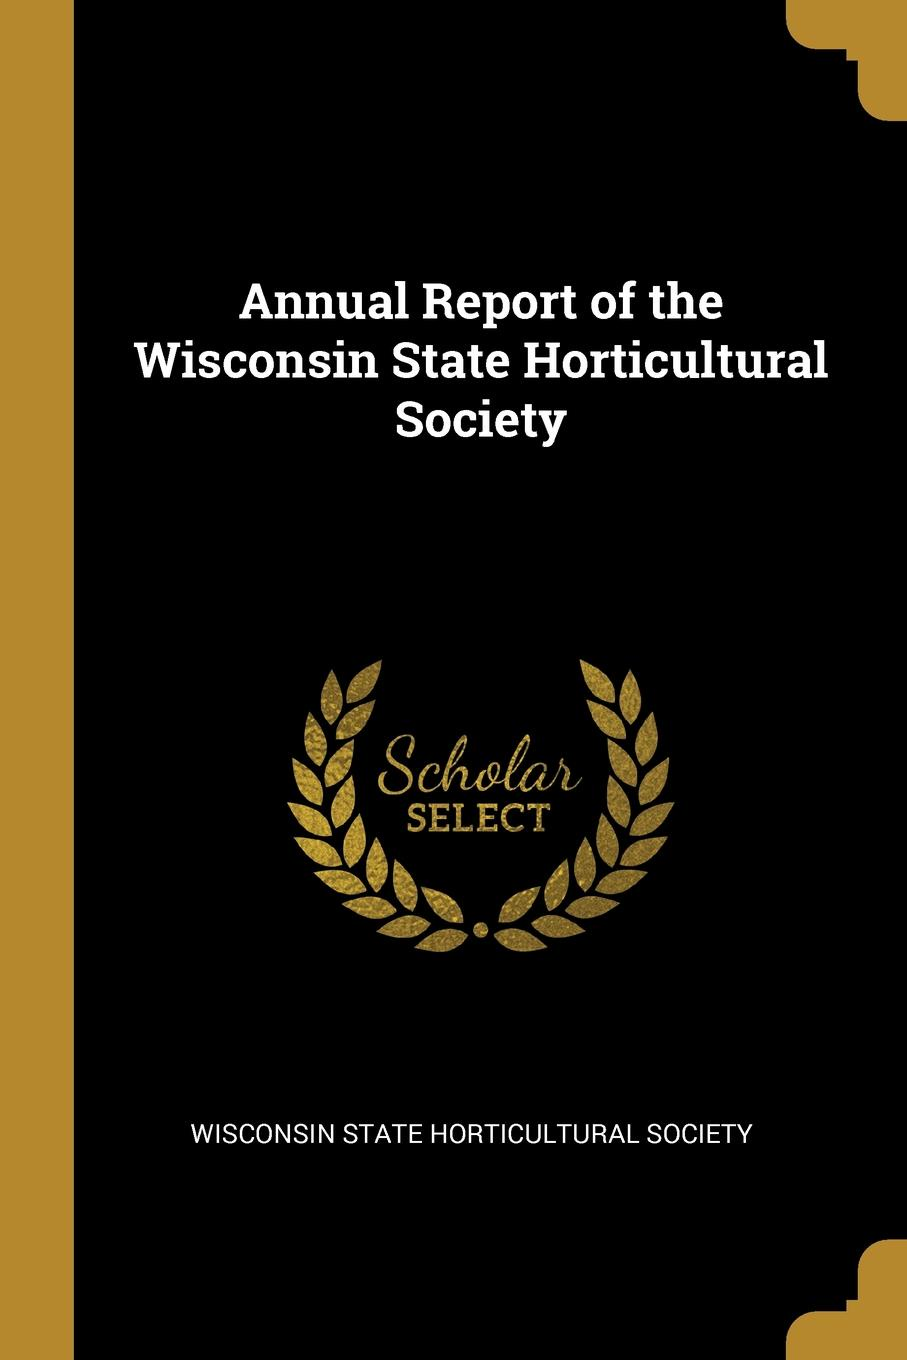 Wisconsin State Horticultural Society Annual Report of the Wisconsin State Horticultural Society